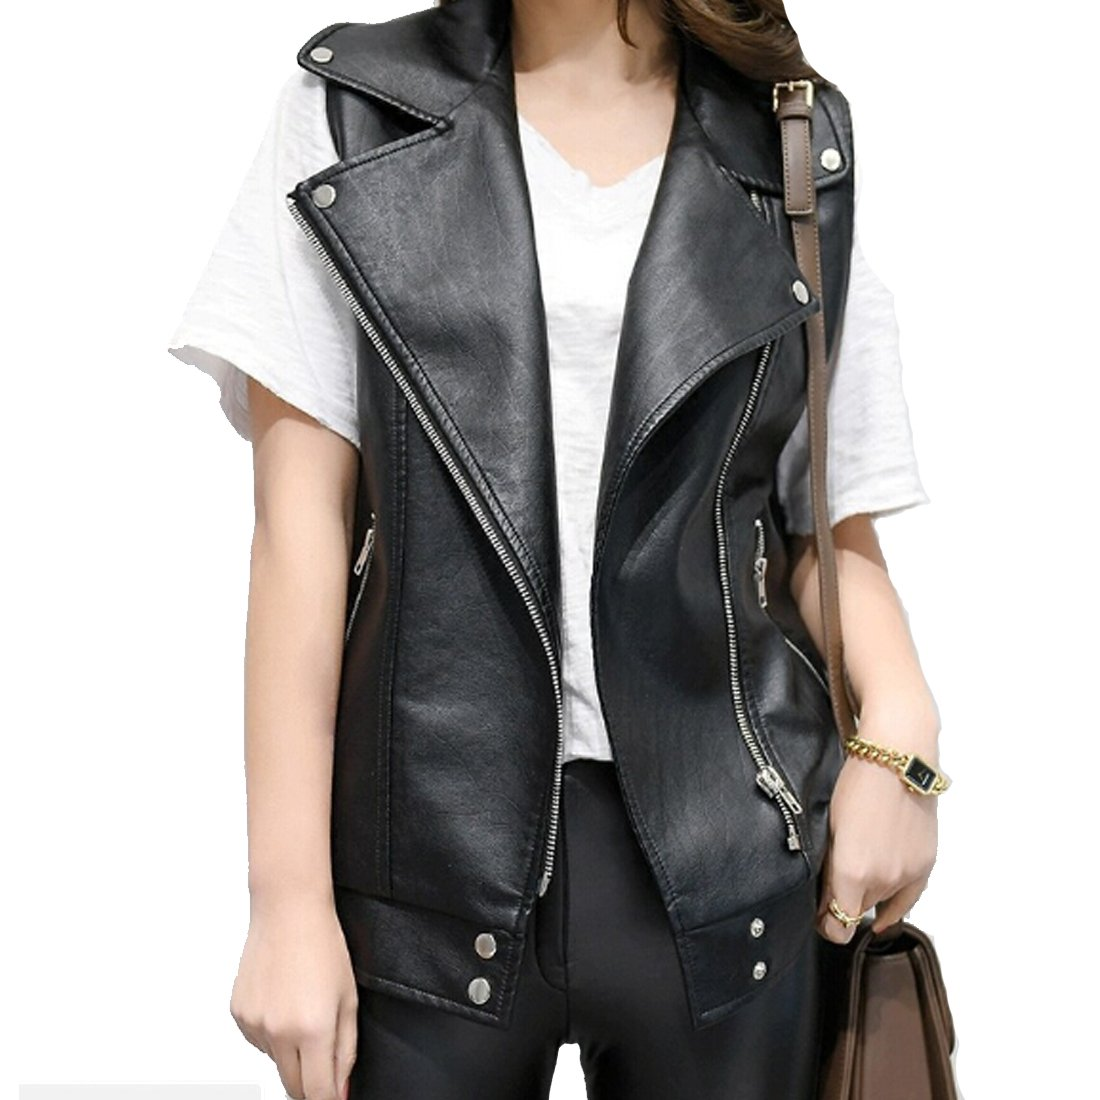 Osave Womens PU Leather Sleeveless Motorcycle Zipper Jacket Black Rivet Moto Vest (S) by Osave (Image #1)